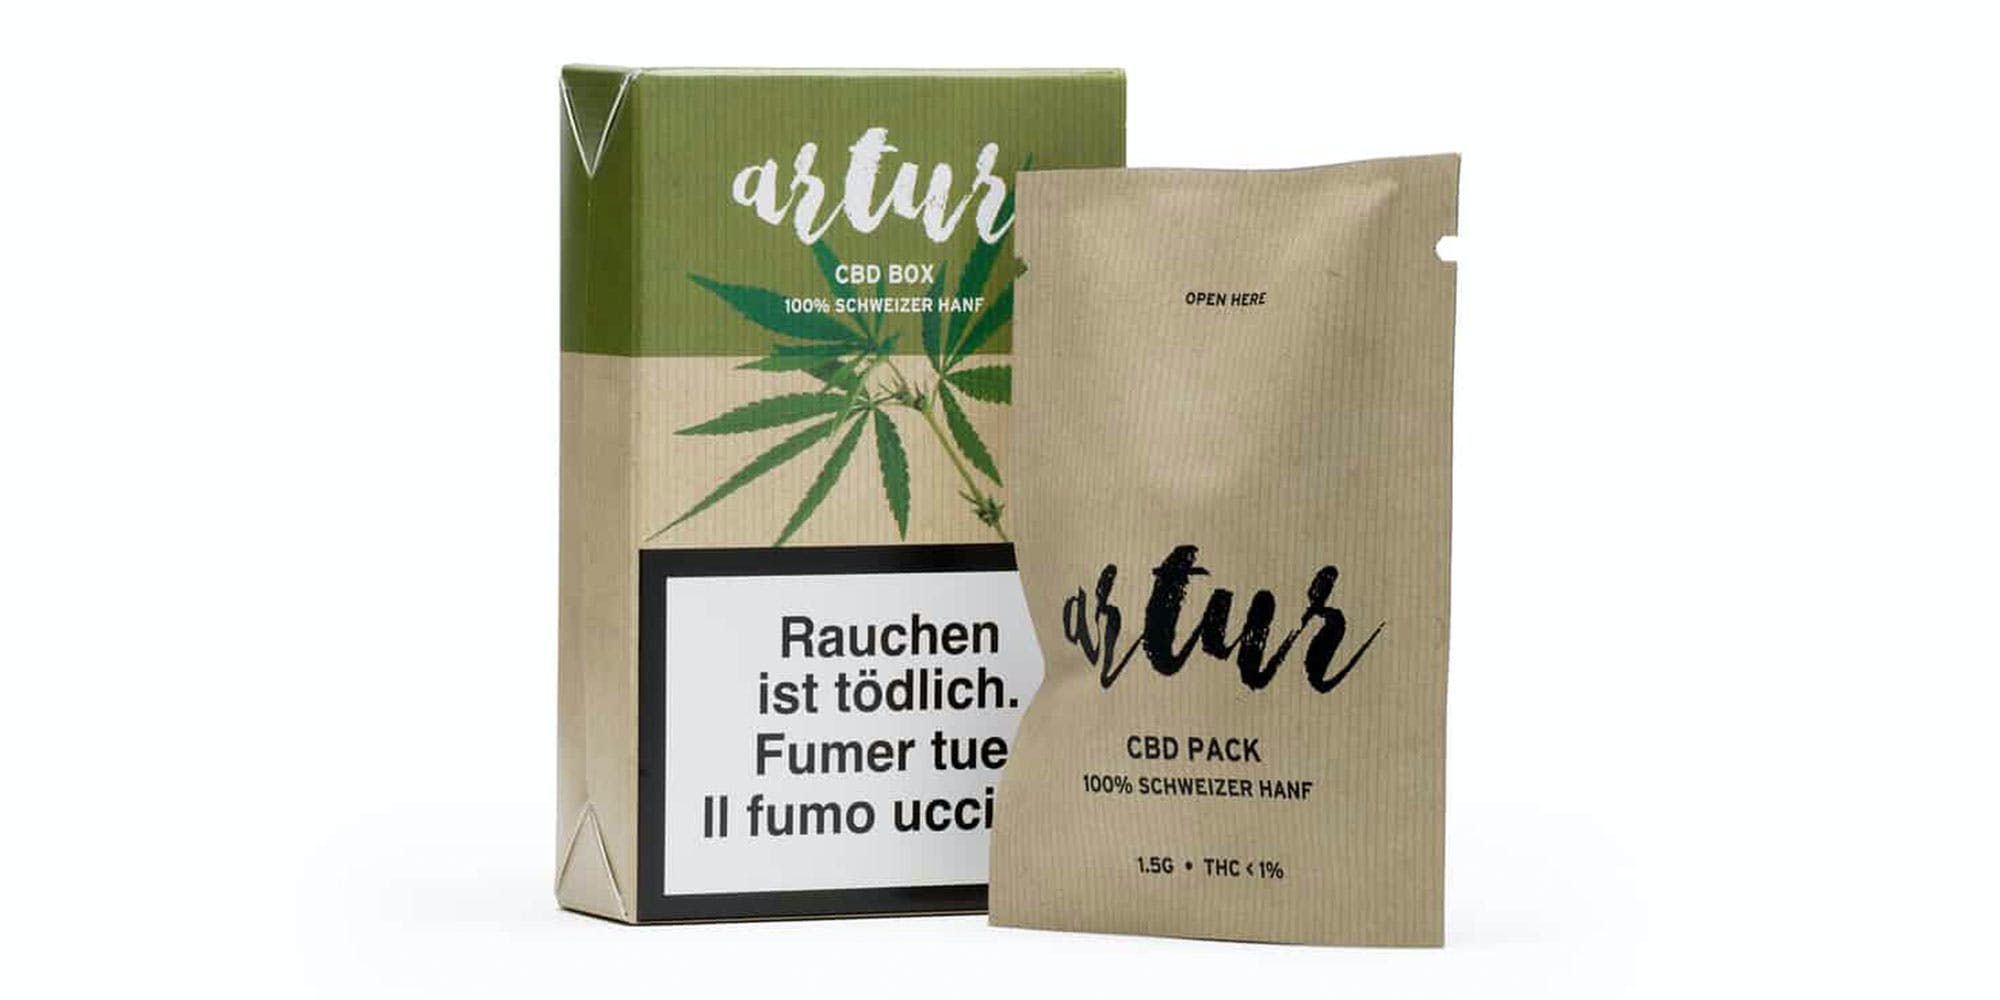 Swiss Supermarket Lidl Sells Rolling CBD Next To Tobacco To Help People Quit Cigarettes